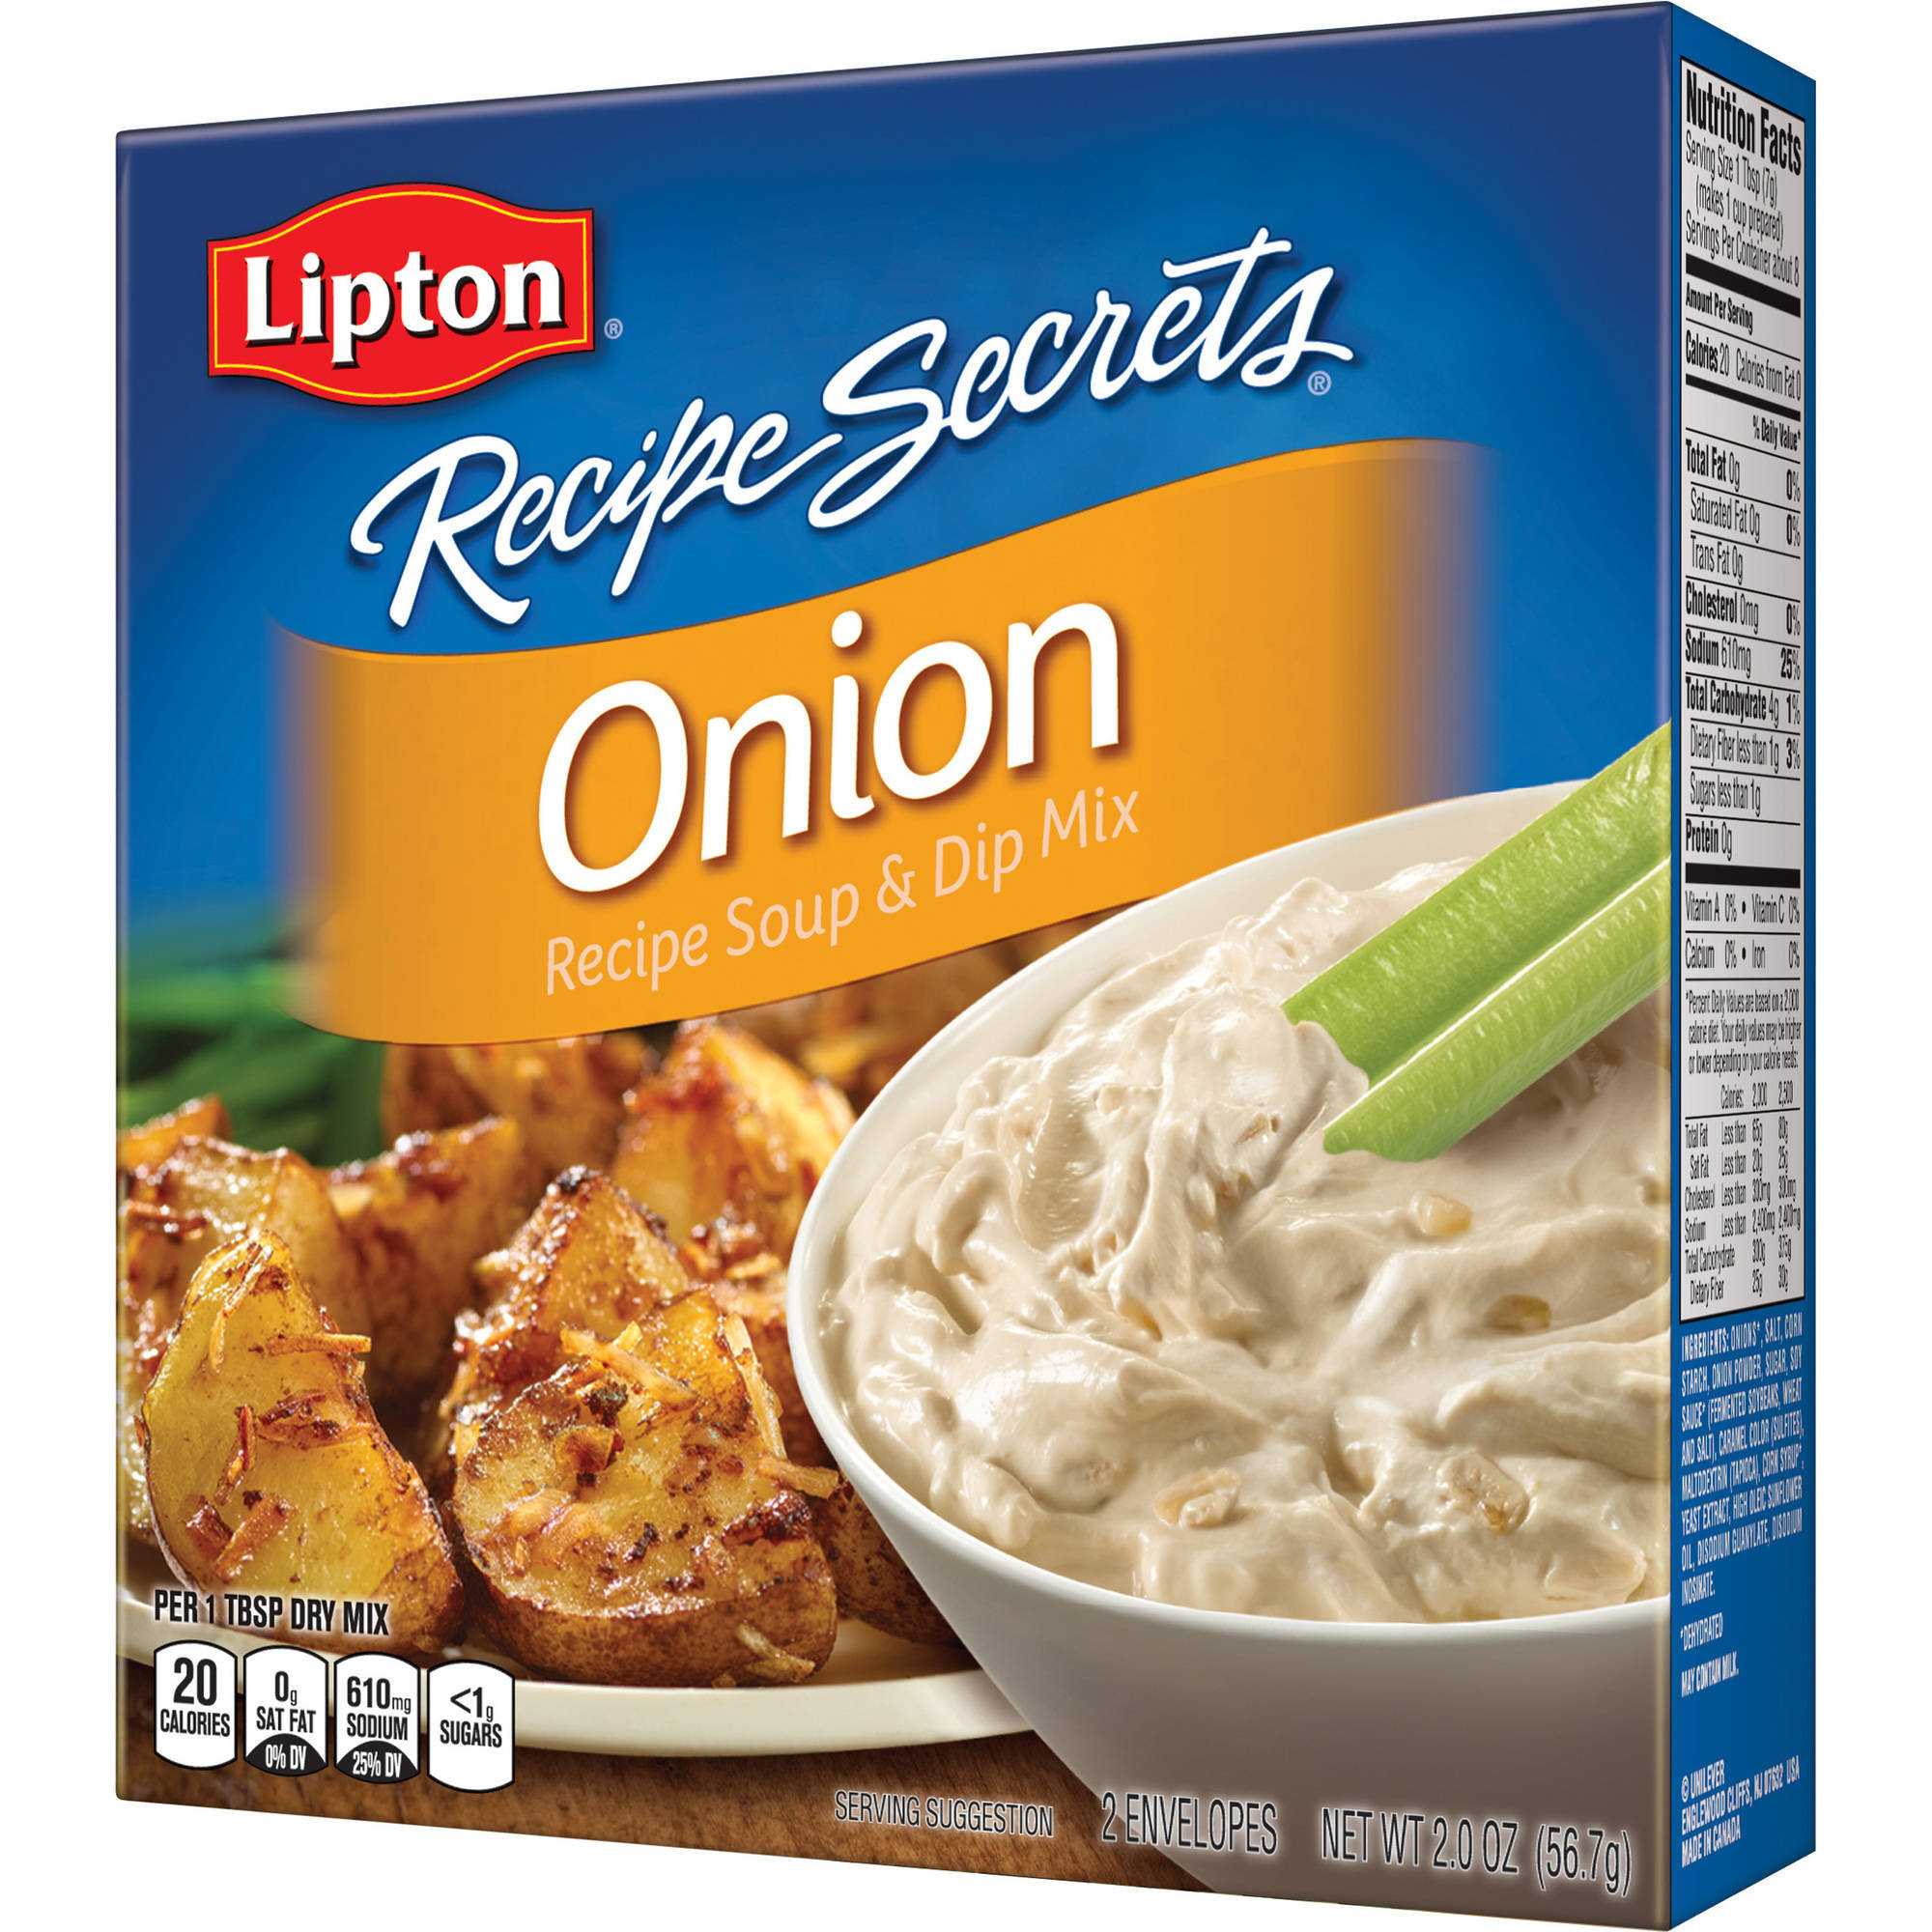 Lipton Recipe Secrets Onion Soup and Dip Mix, 2 oz